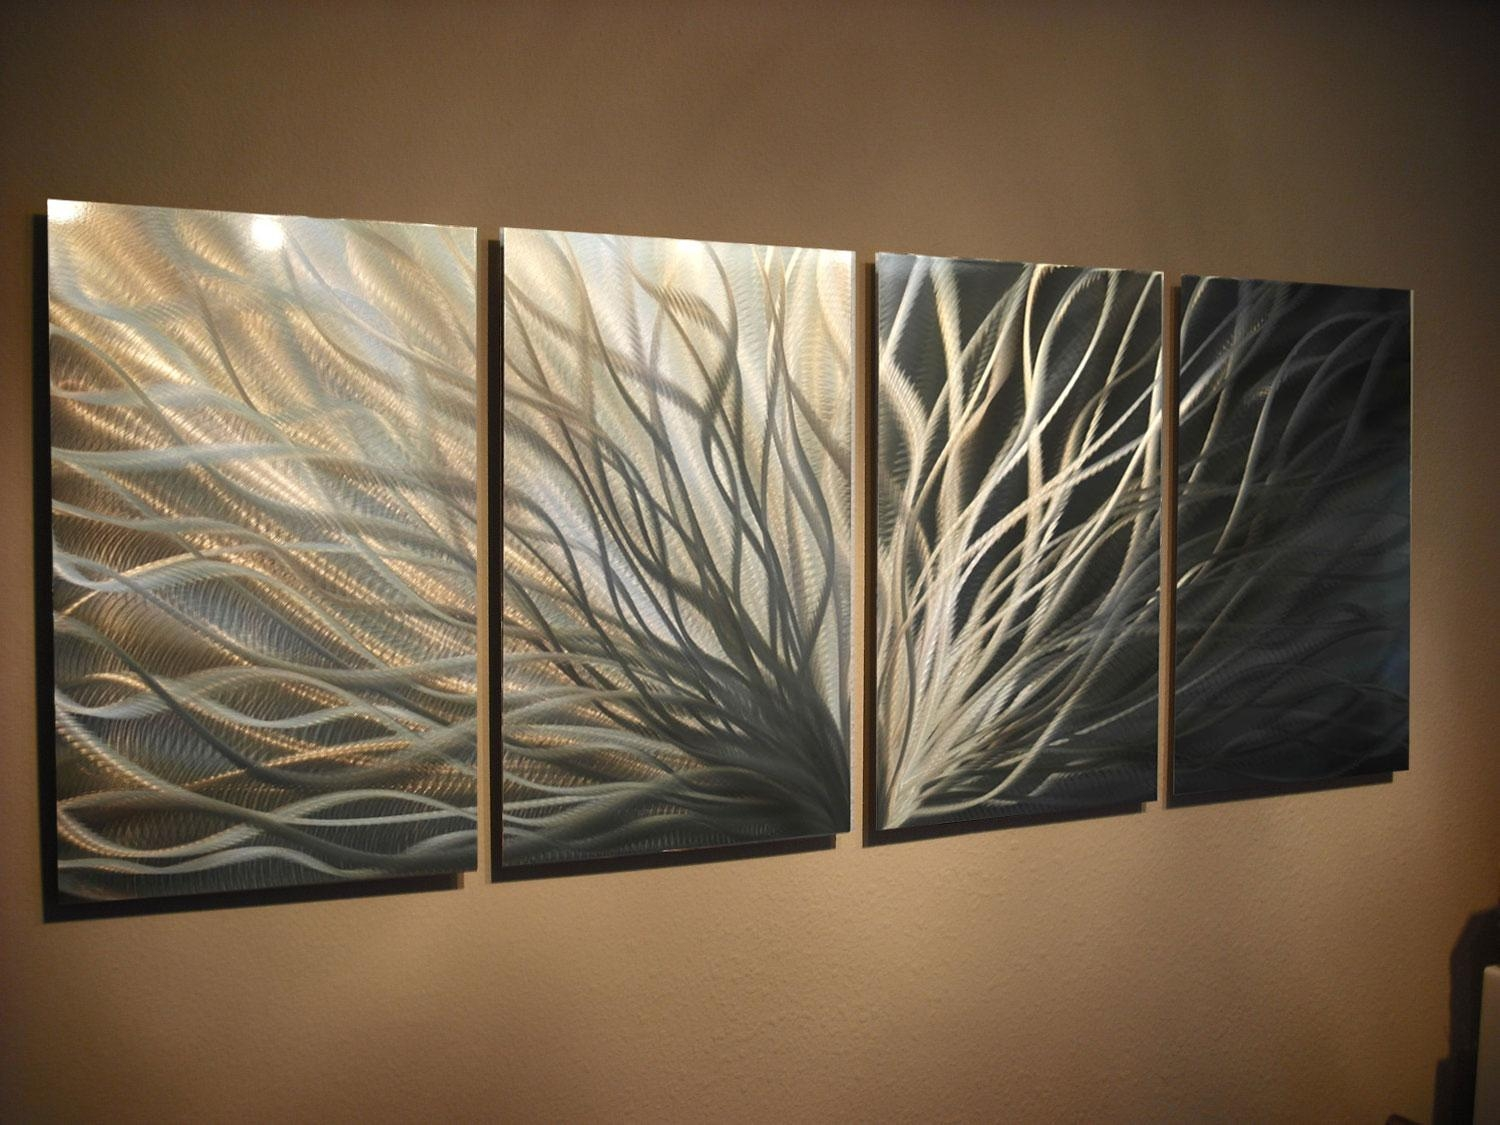 Abstract Metal Wall Art Radiance Gold Silver Contemporary Modern Pertaining To Silver And Gold Wall Art (View 9 of 20)